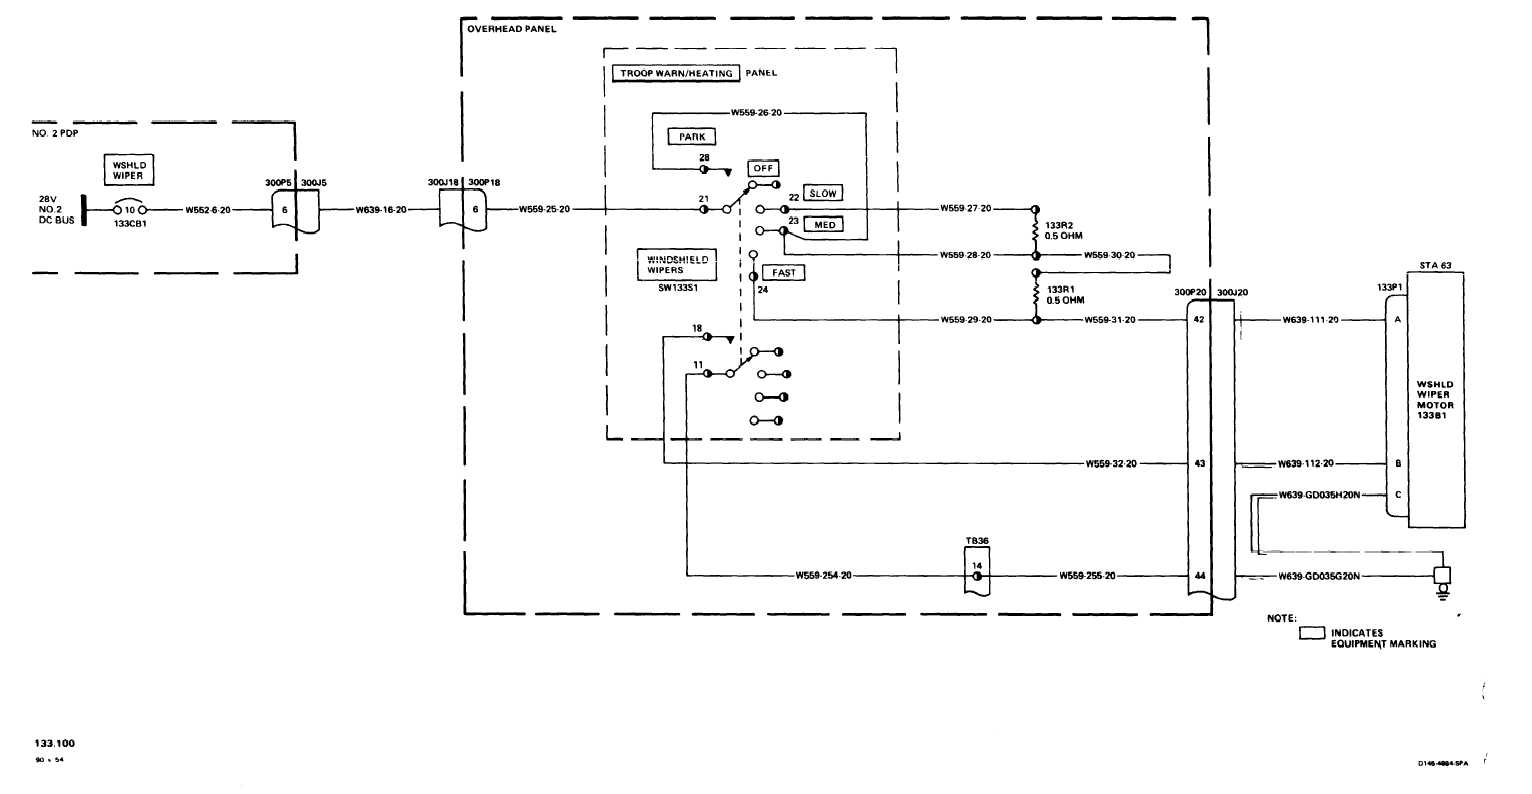 Wiring Diagram Likewise On 1968 Jeep Cj5 Wiper Switch